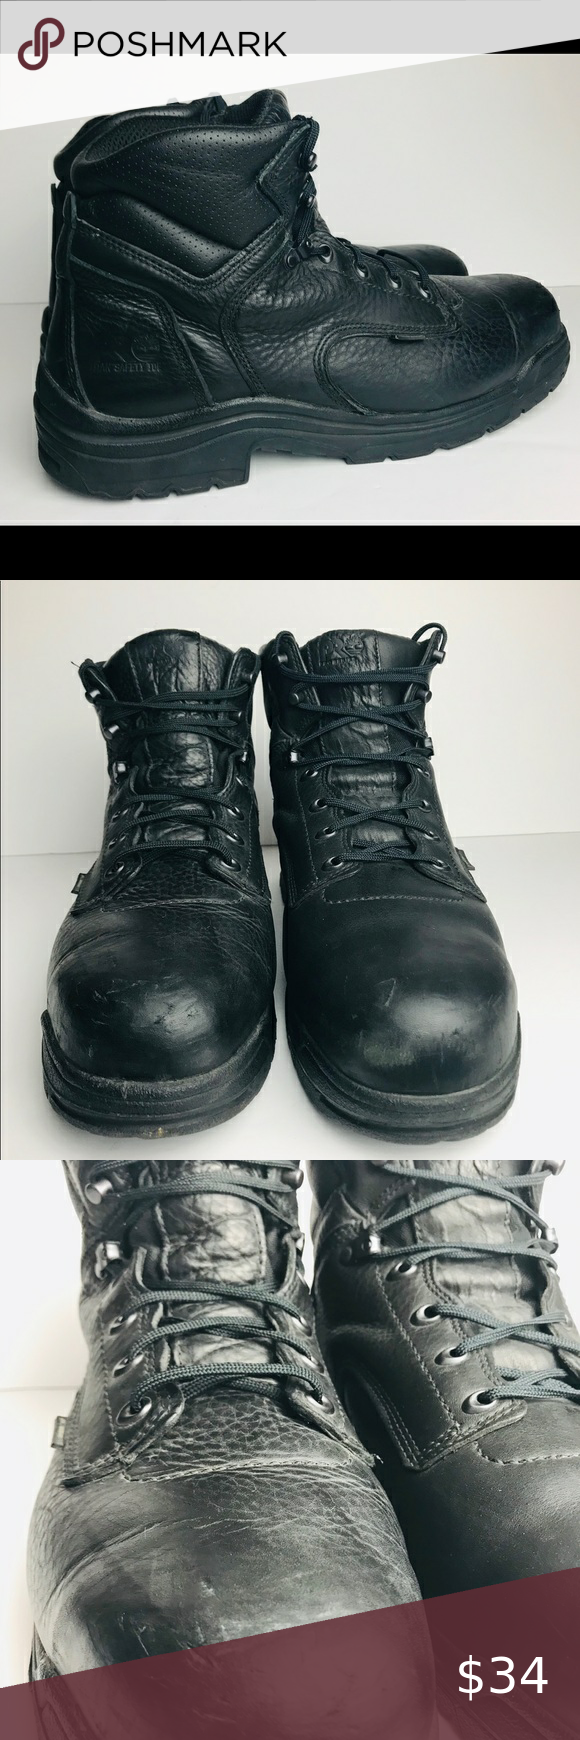 Black boots, Boots, Shoes boots timberland